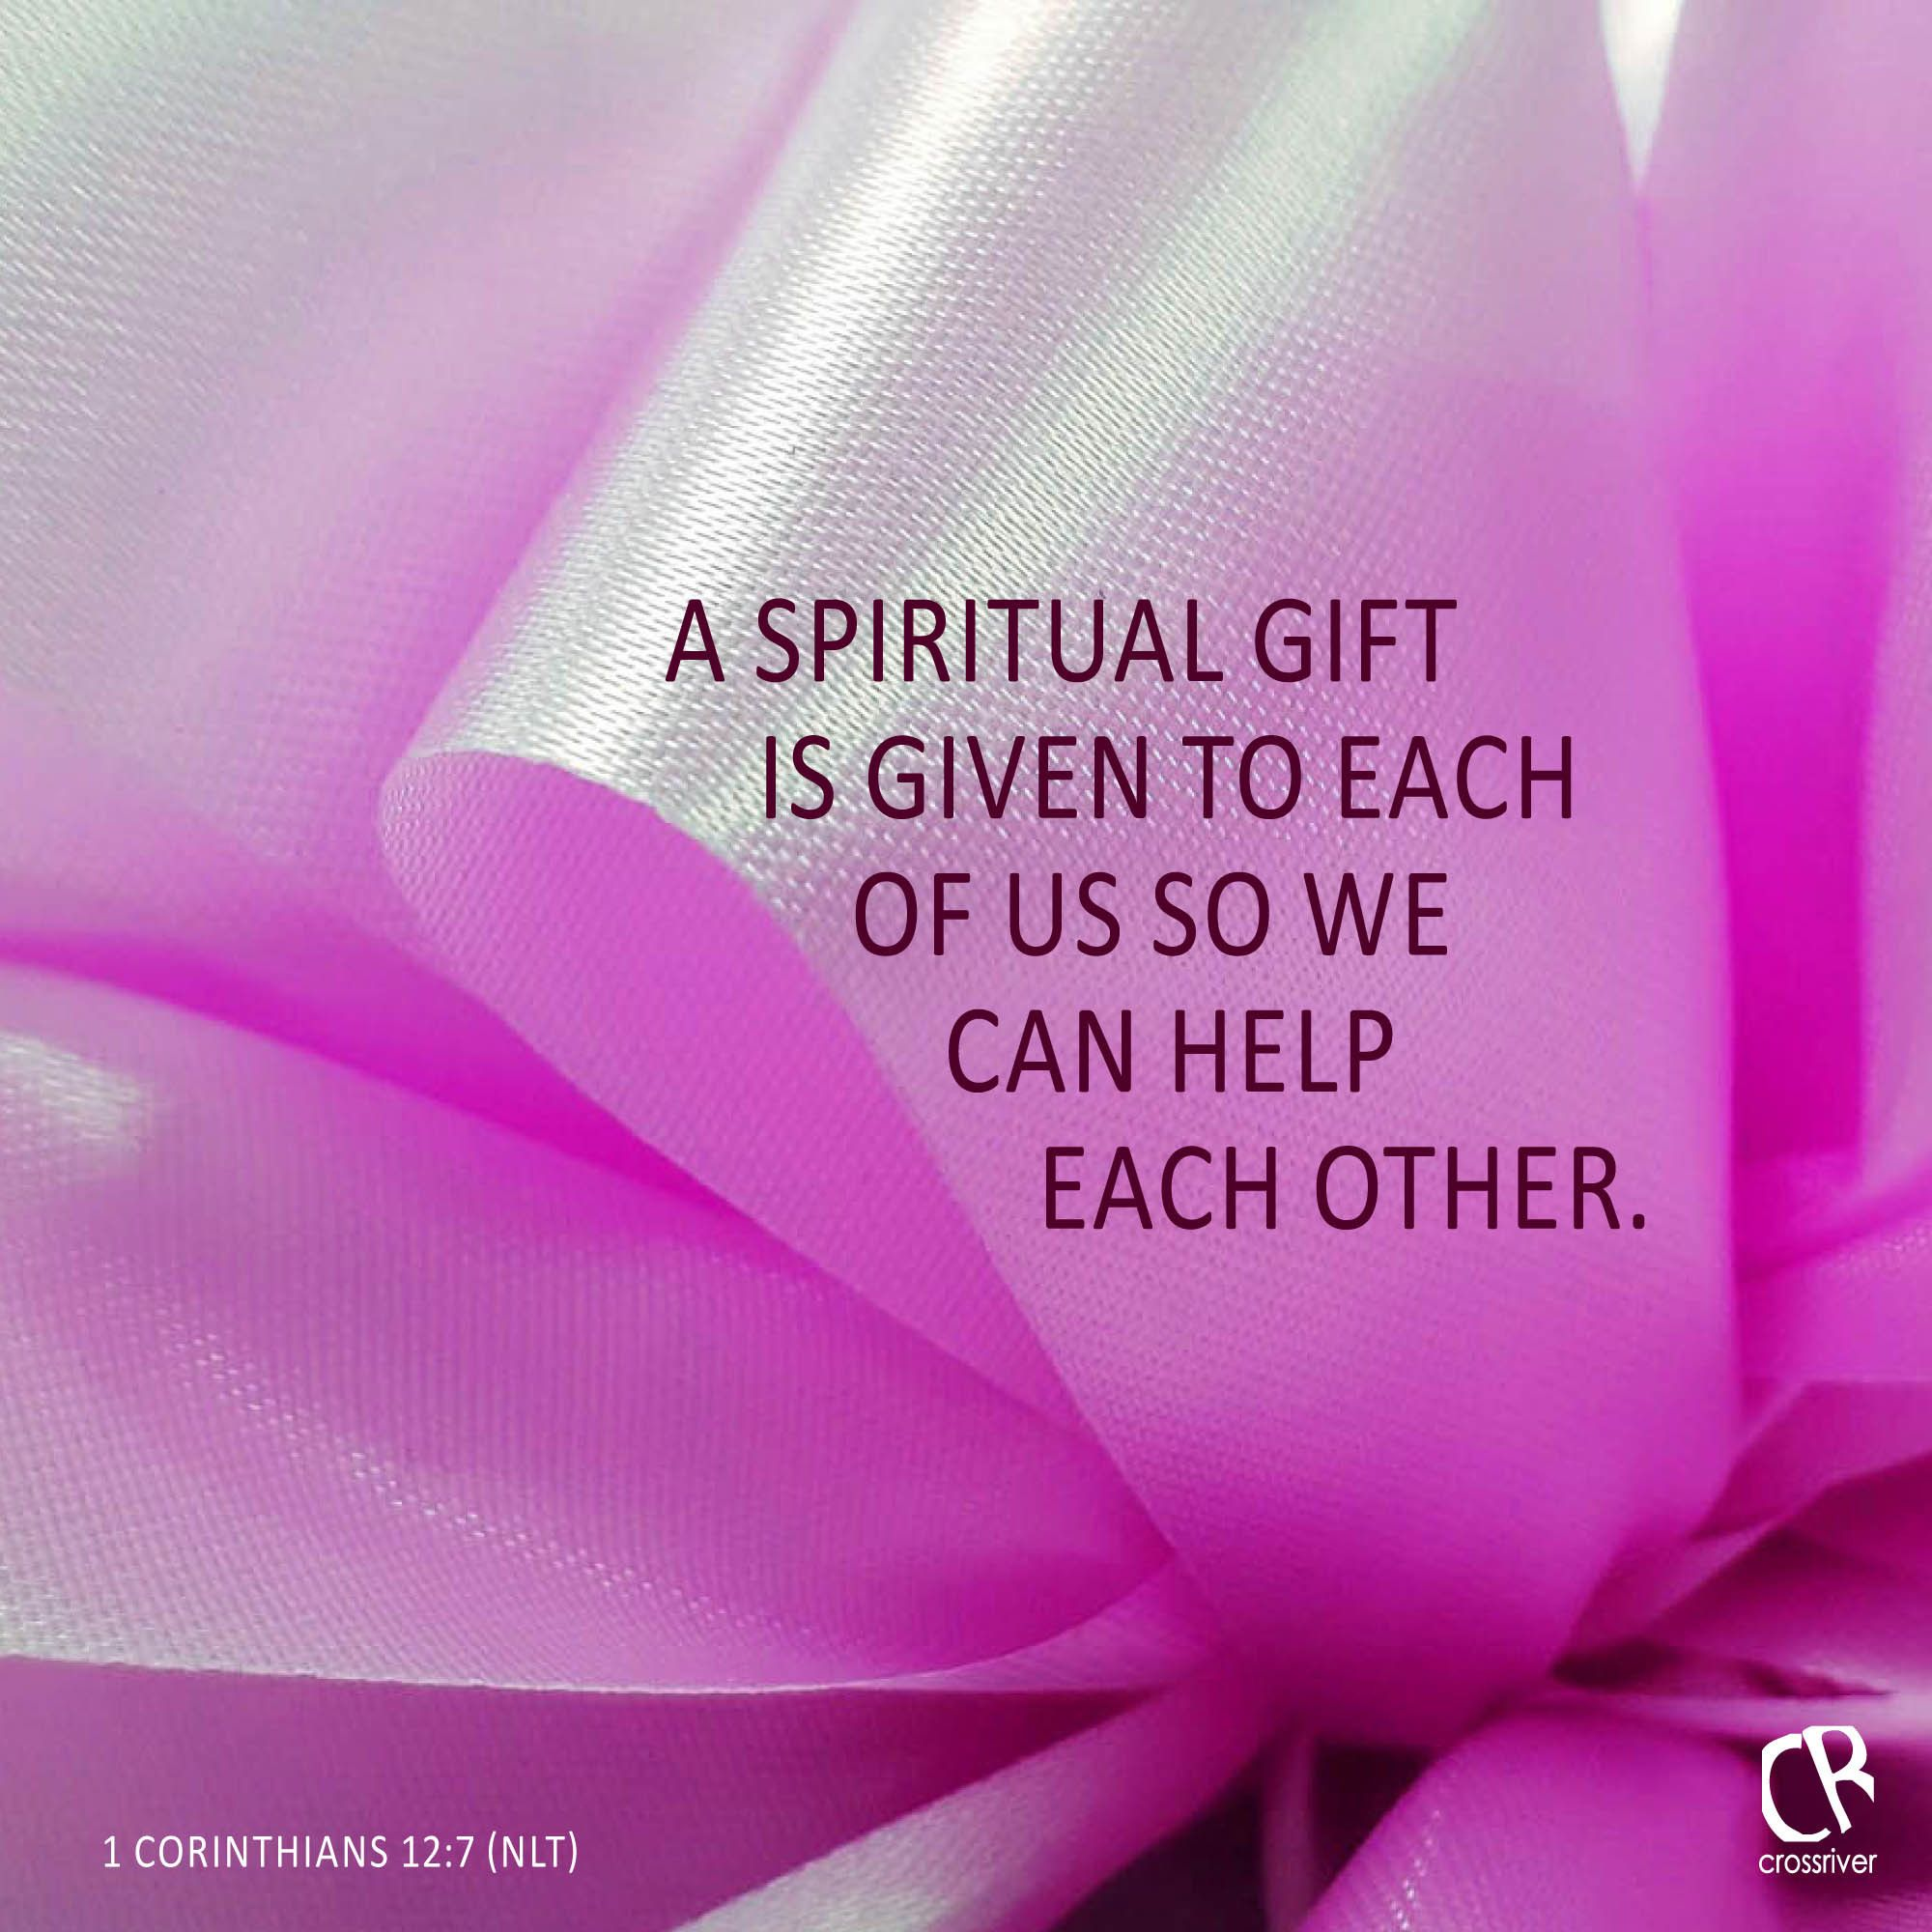 A spiritual gift is given to each of us so we can help each other a spiritual gift is given to each of us so we can help each other negle Gallery